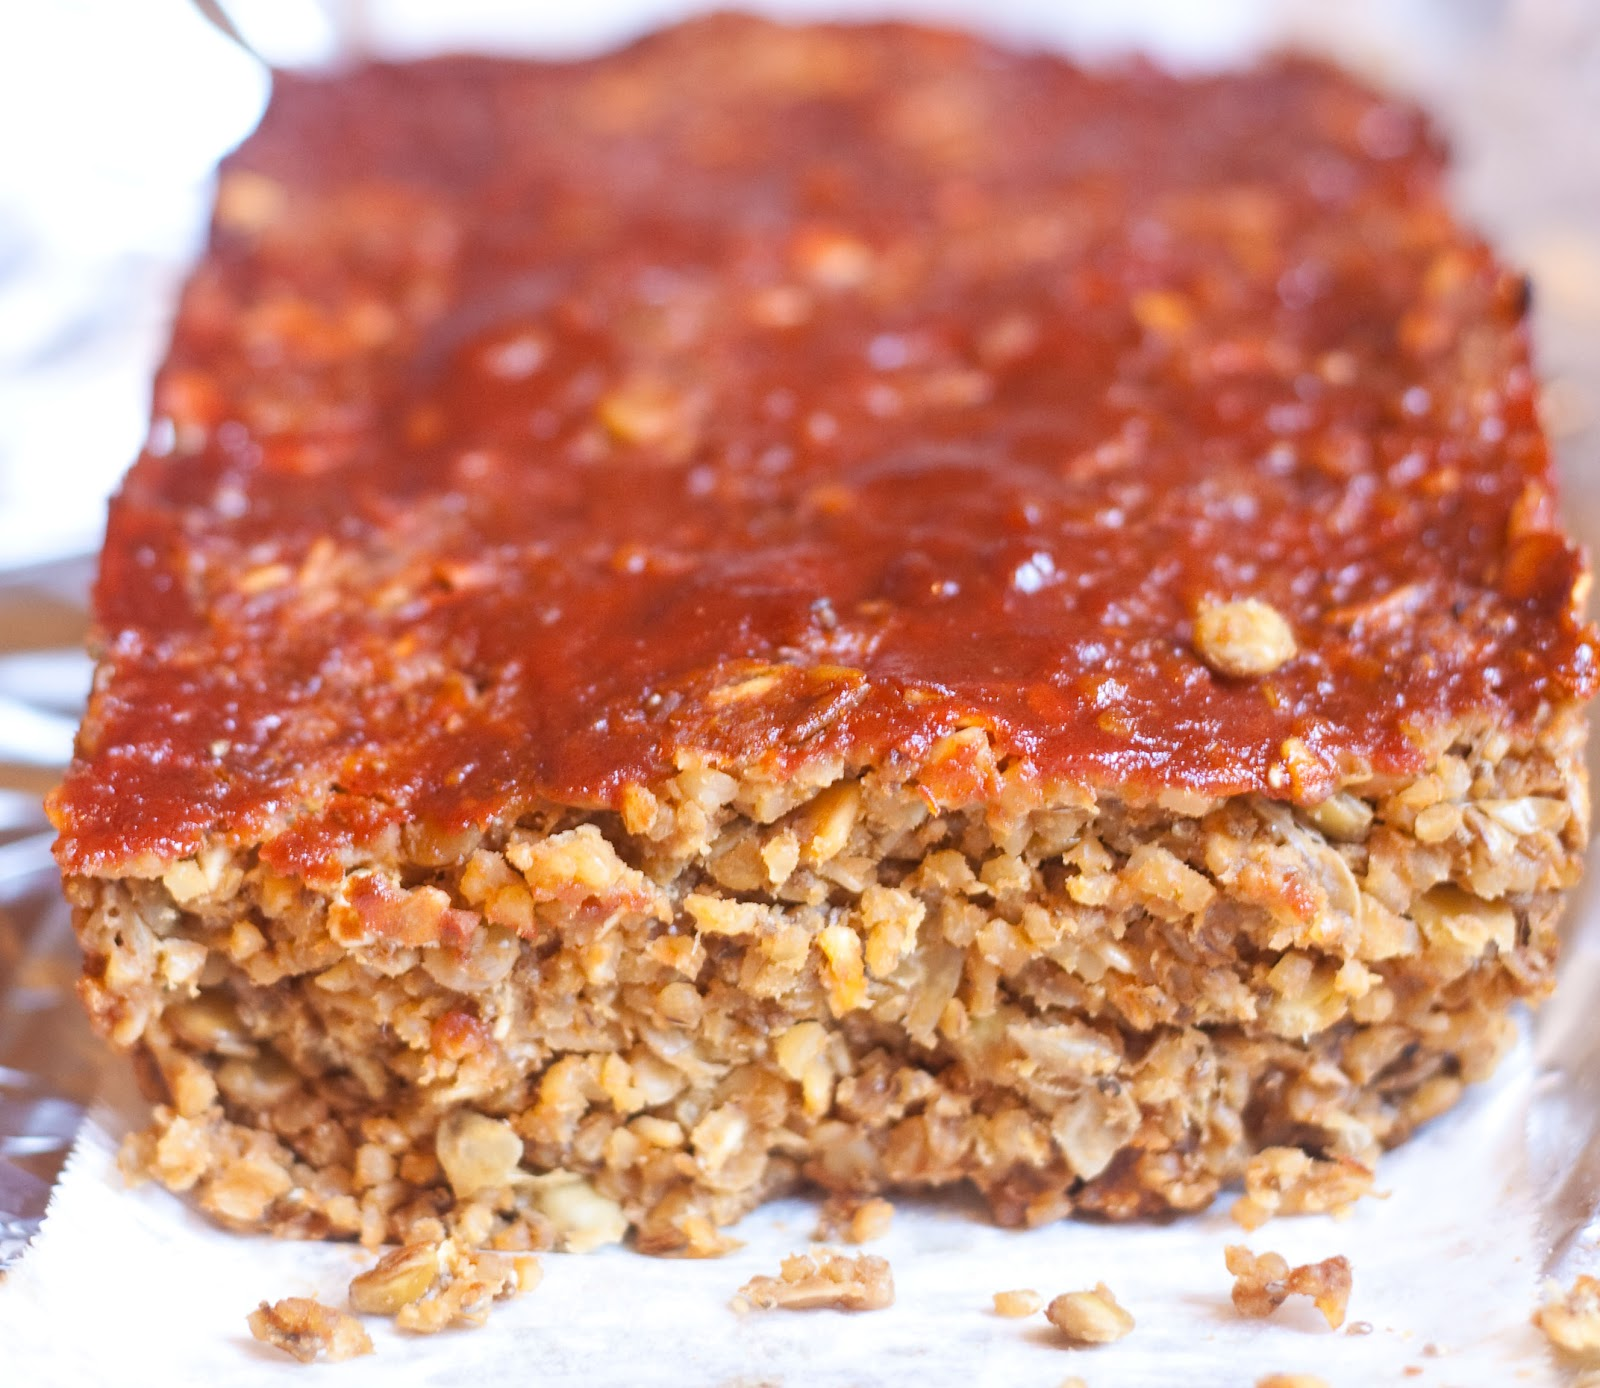 Fat Free Vegan Kitchen: The Fresh Princess Of Bon Air: Vegan Week: Lentil Meatloaf